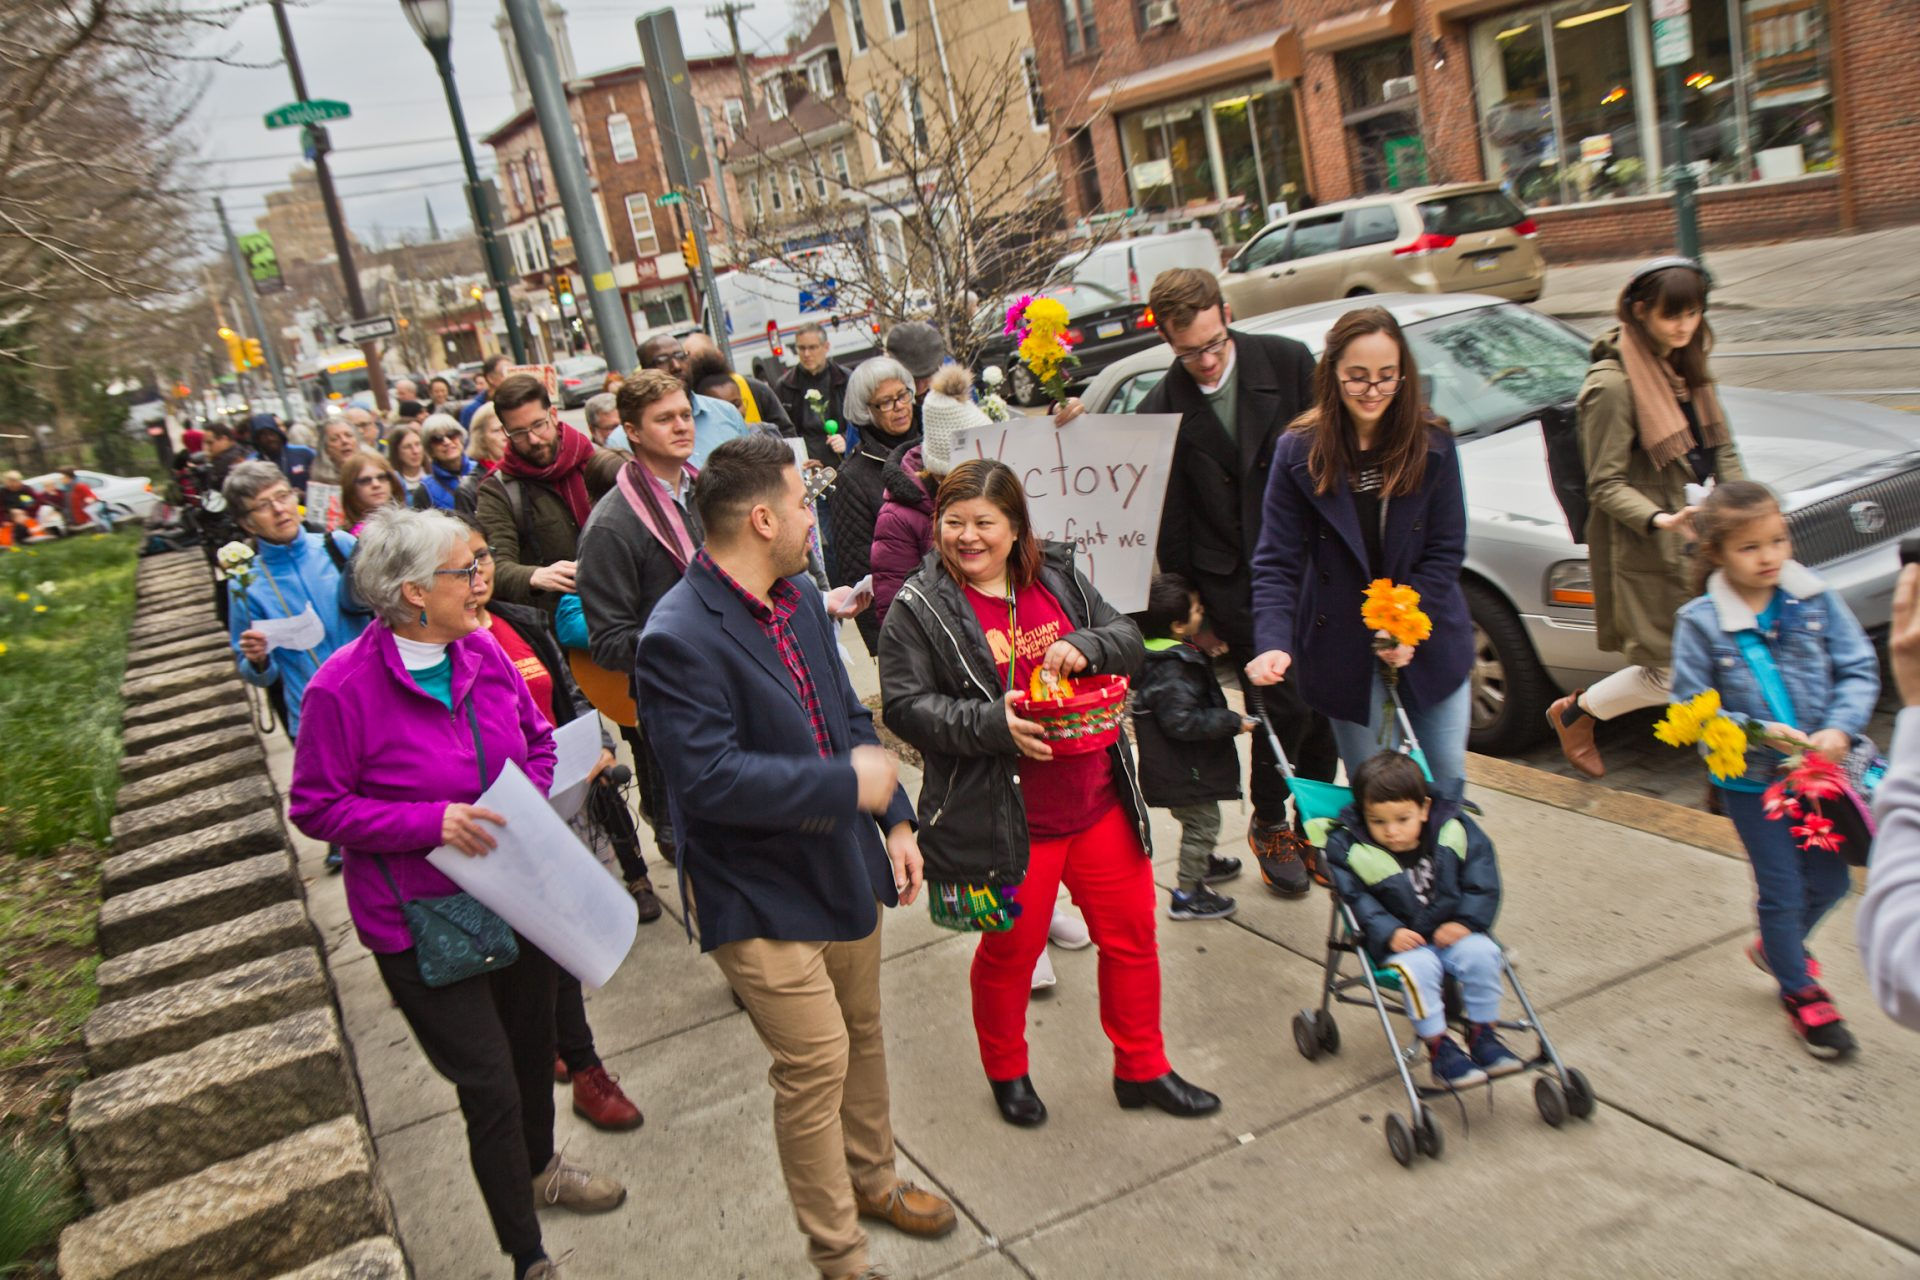 Suyapa Reyes and members of the First United congregation march to the Germantown Mennonite church where Carmela Apolonio Hernandez, another mother living in sanctuary, has called home for the past two years.